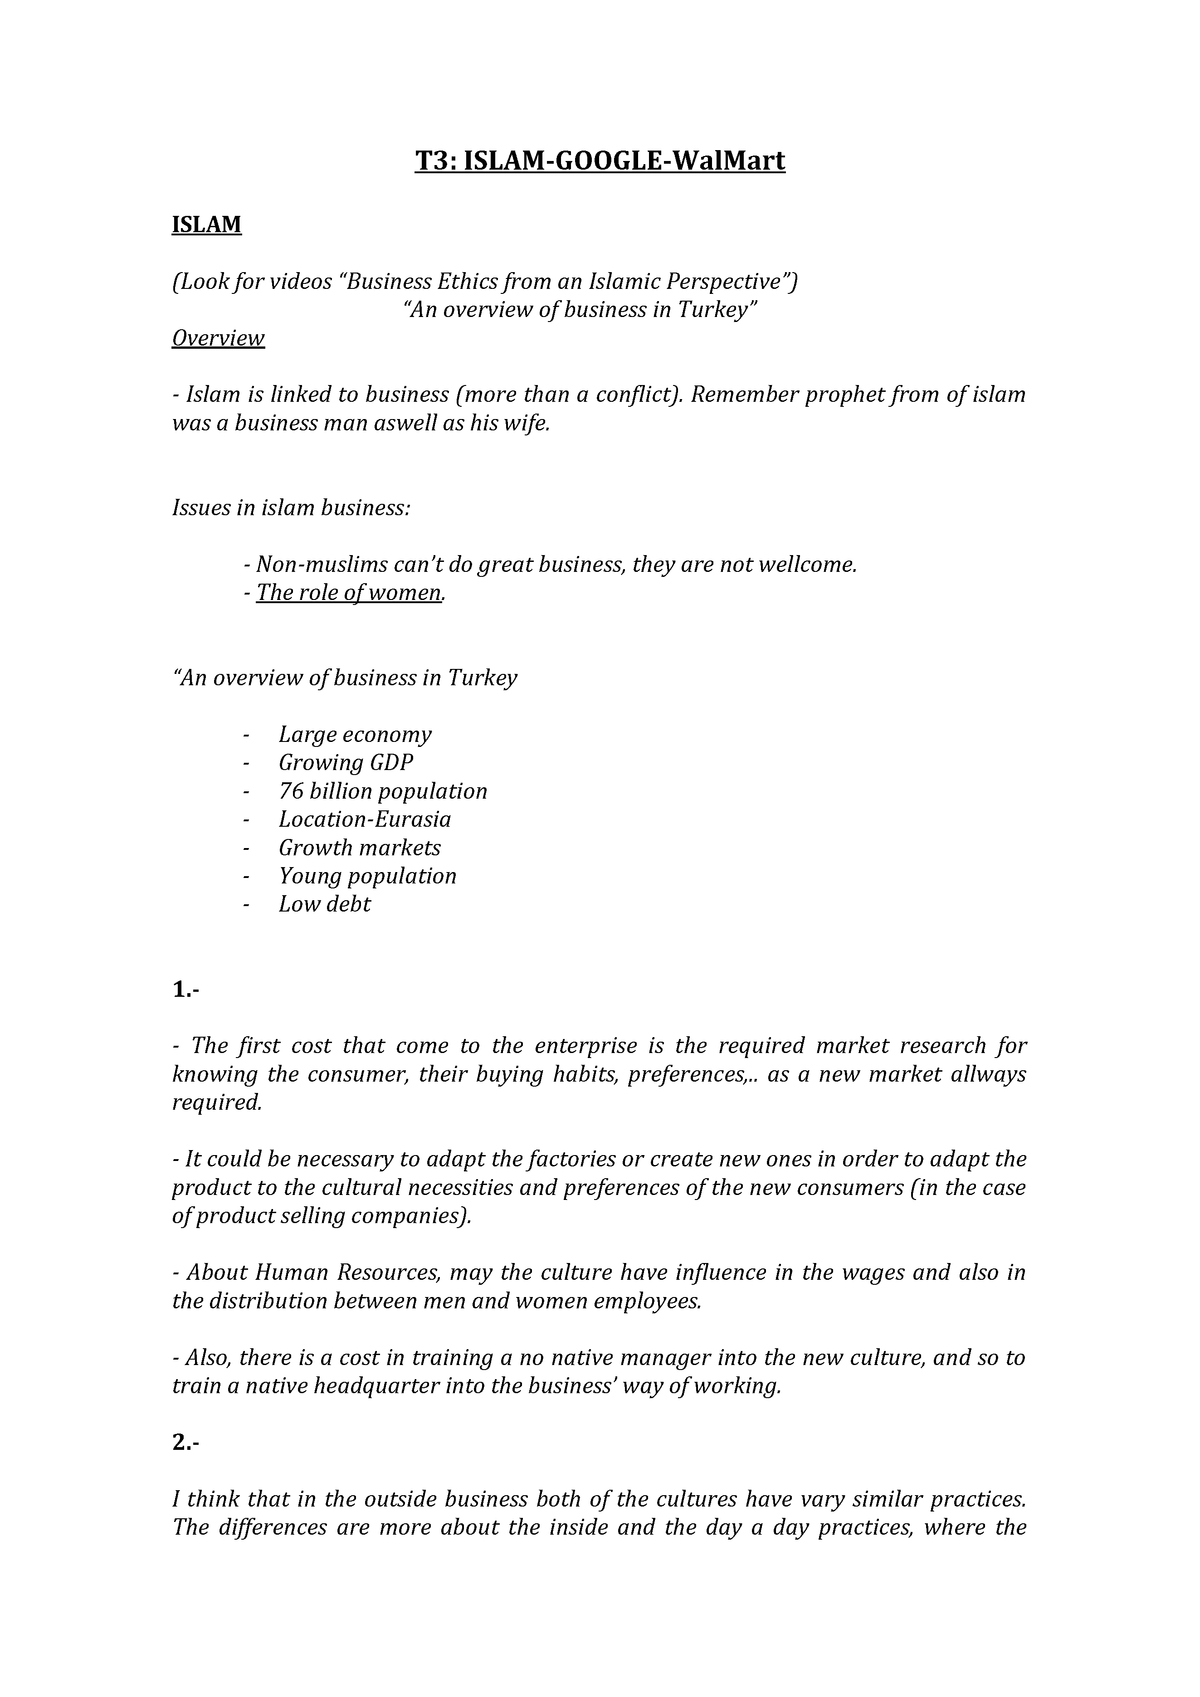 T3 - Answers to the questions for the case study of tutorial